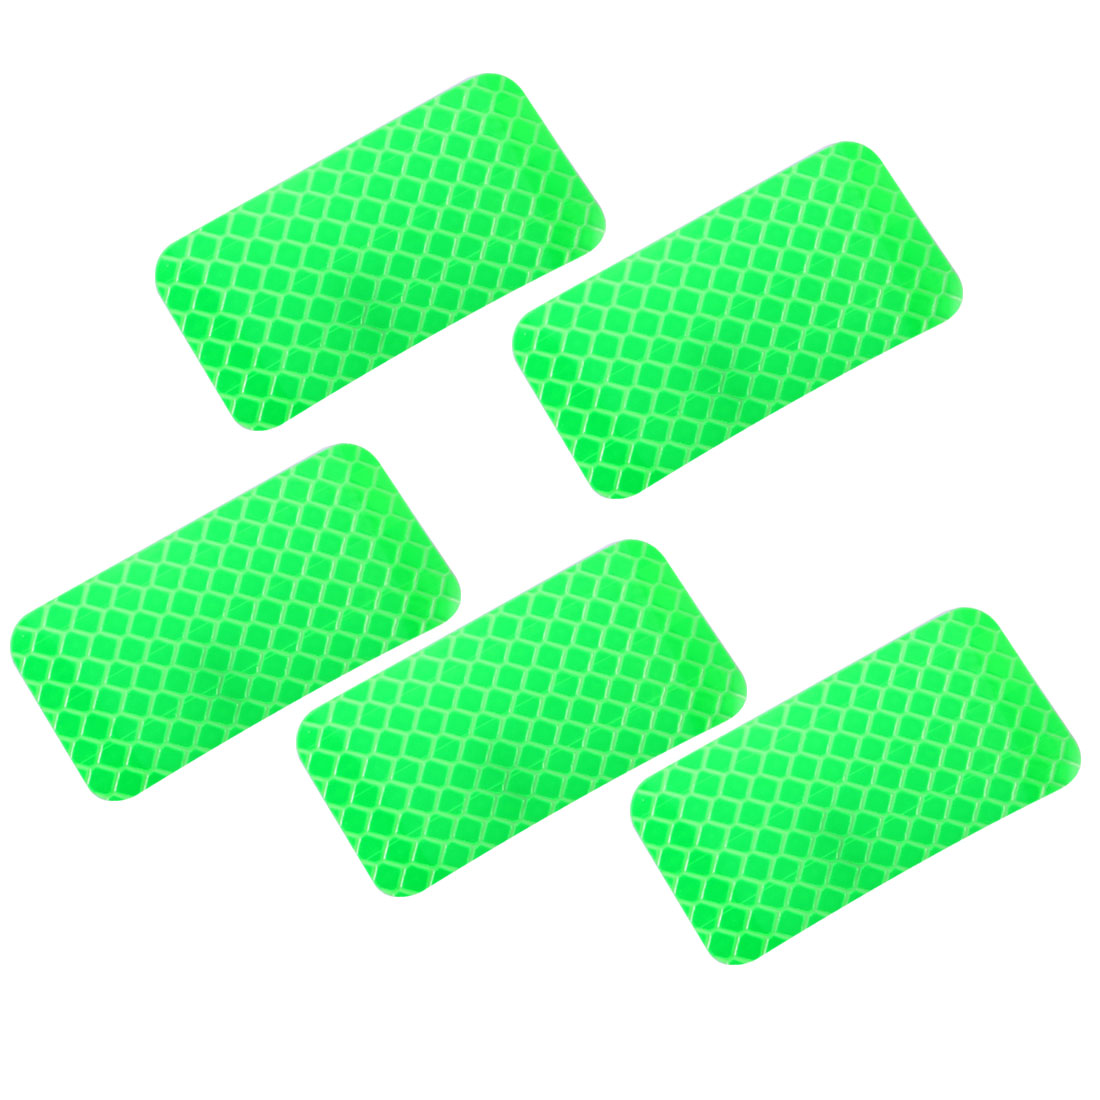 5pcs Honeycomb Reflective Warning Tape Film Sticker Green 30mm x 60mm